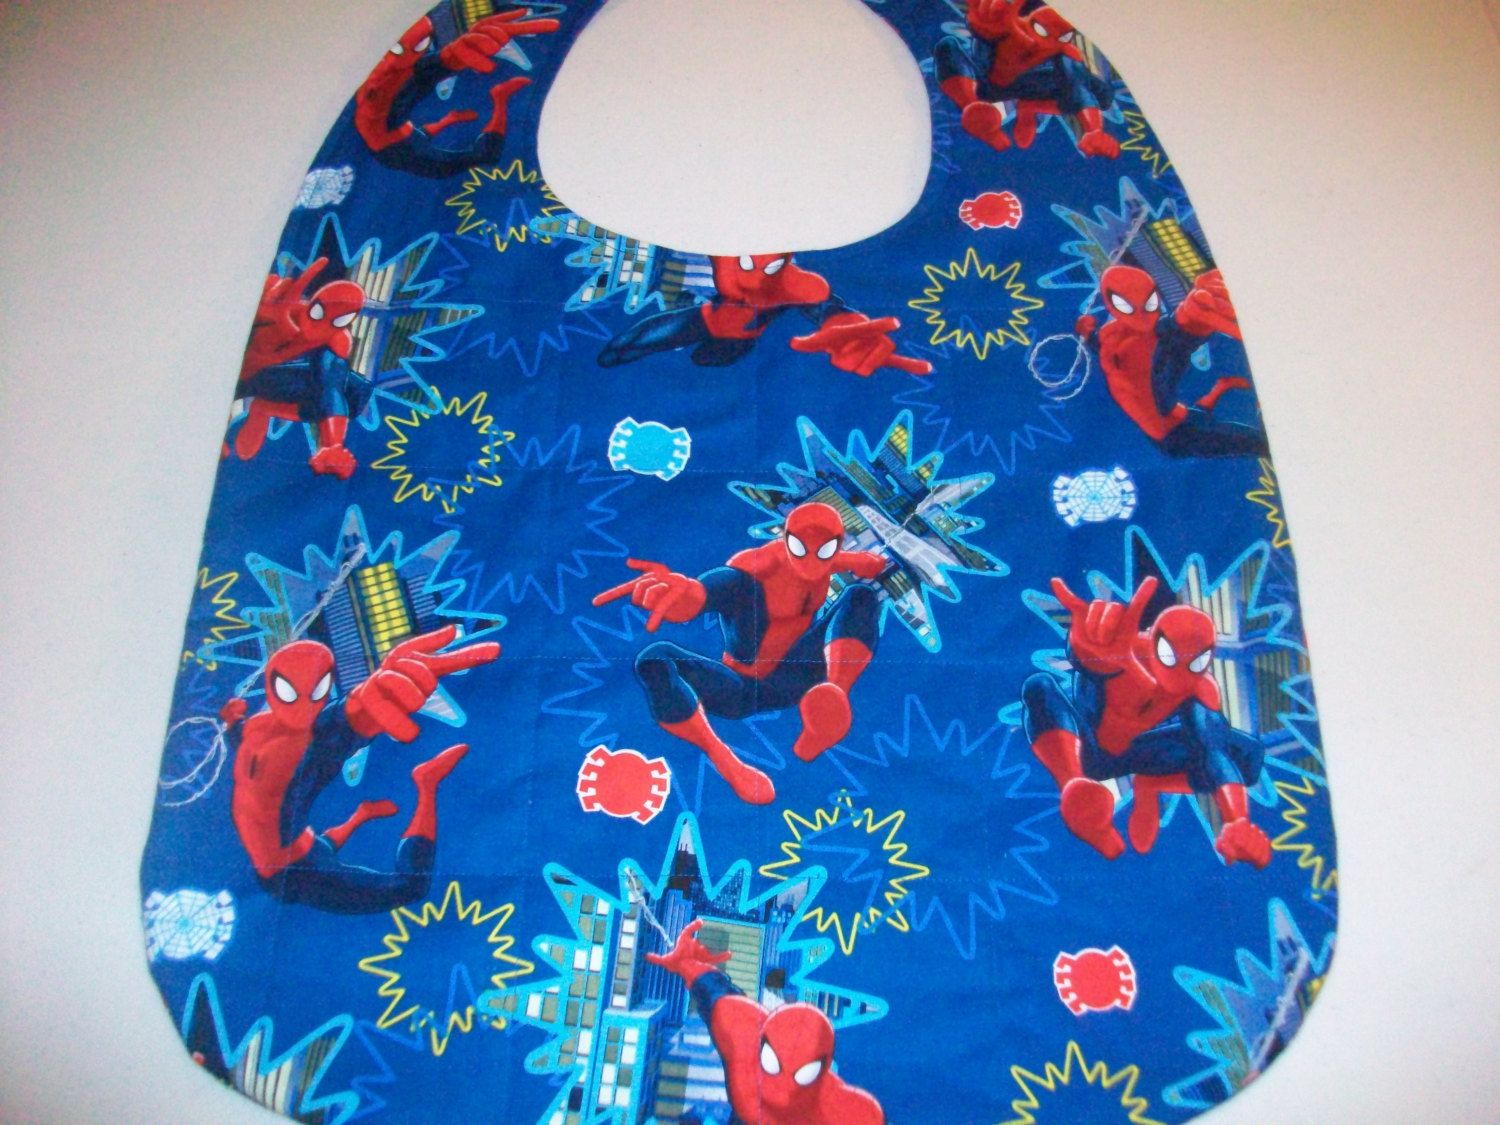 Adult bib, special needs bib, teen bib, clothing protector,special need, care givers, quilted batting by NinsThisandThat on Etsy